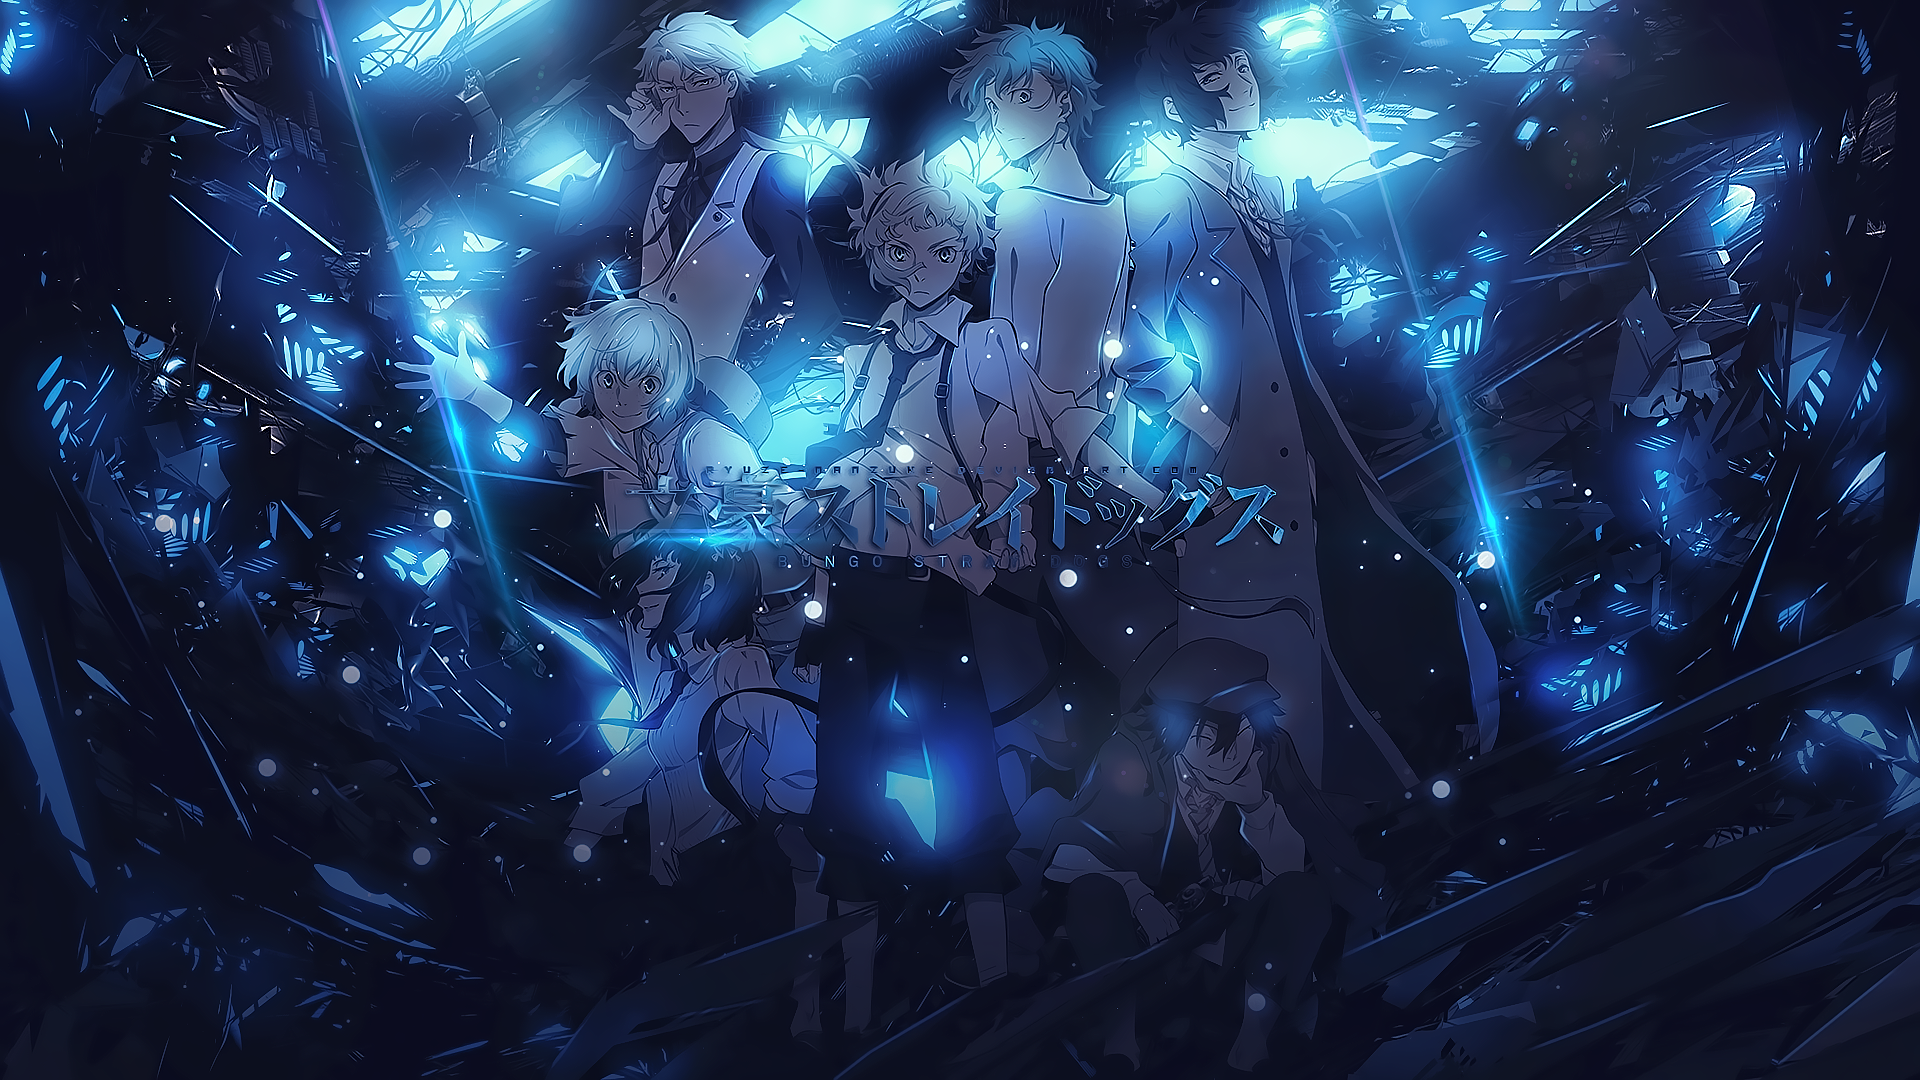 Bungou Stray Dogs Hd Wallpaper Background Image 1920x1080 Id